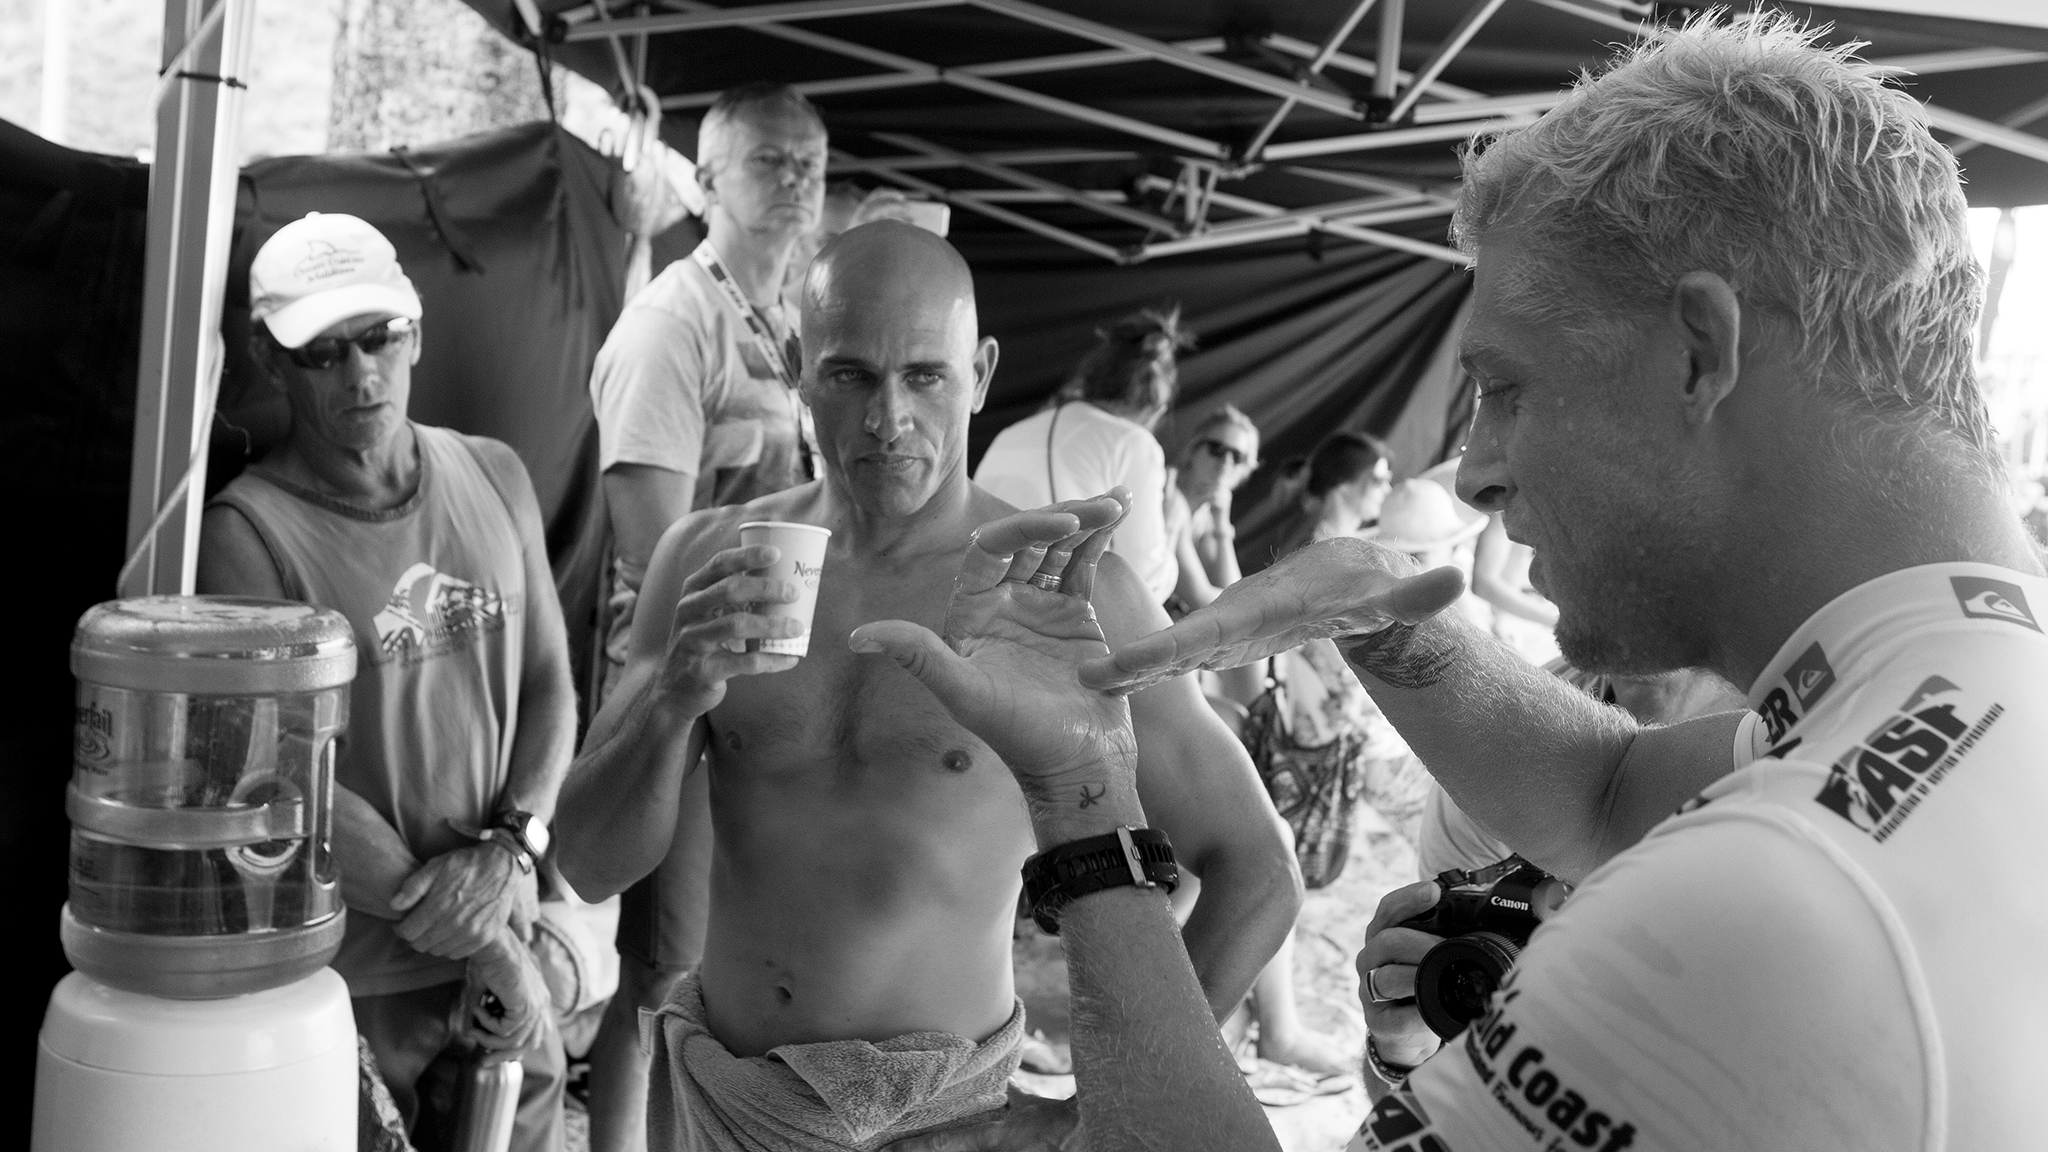 Kelly Slater and Mick Fanning